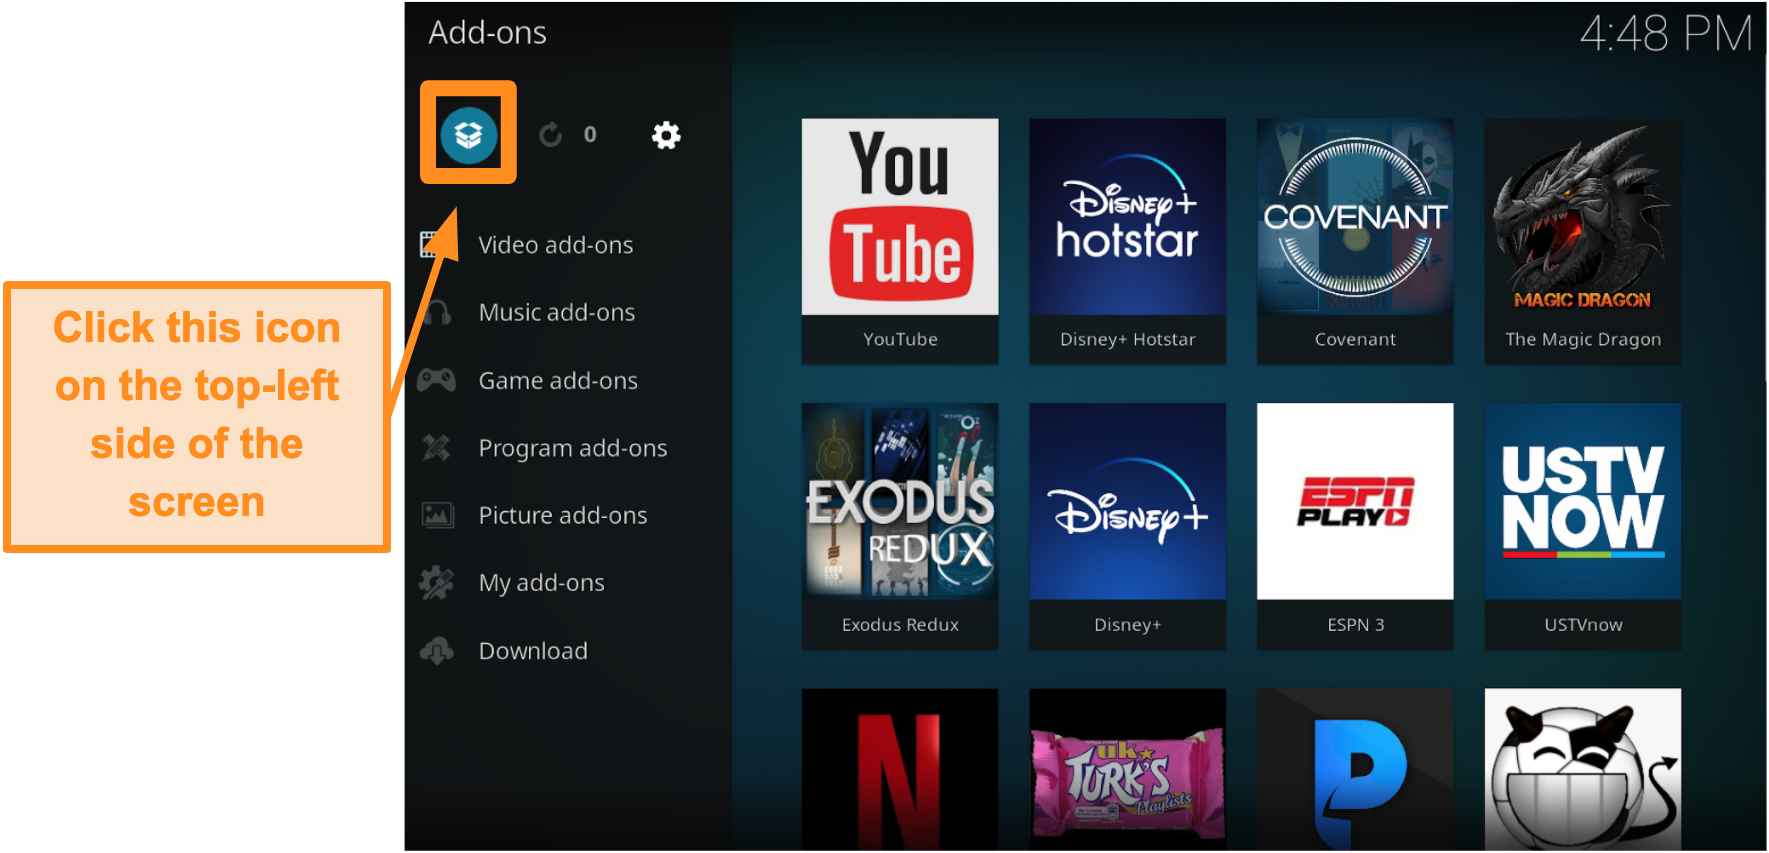 screenshot-of-how-to-install-official-kodi-addon-step-three-click-box-icon